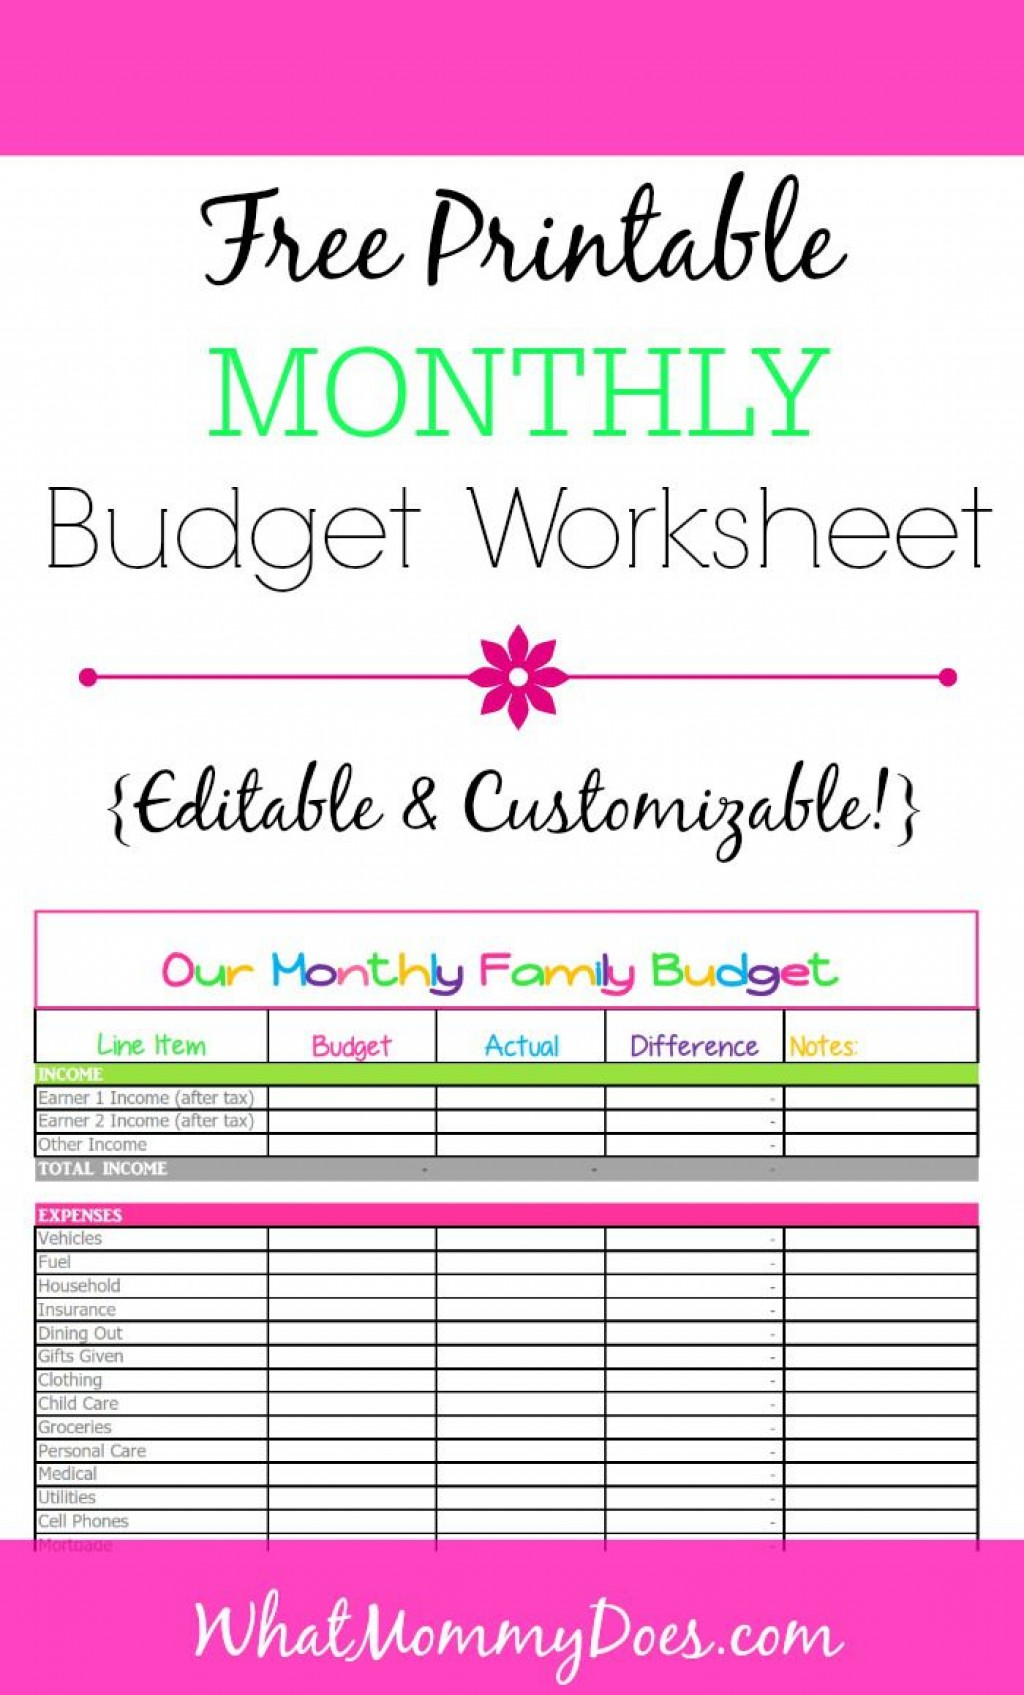 008 Awesome Free Printable Home Budget Template Photo  Form SheetLarge